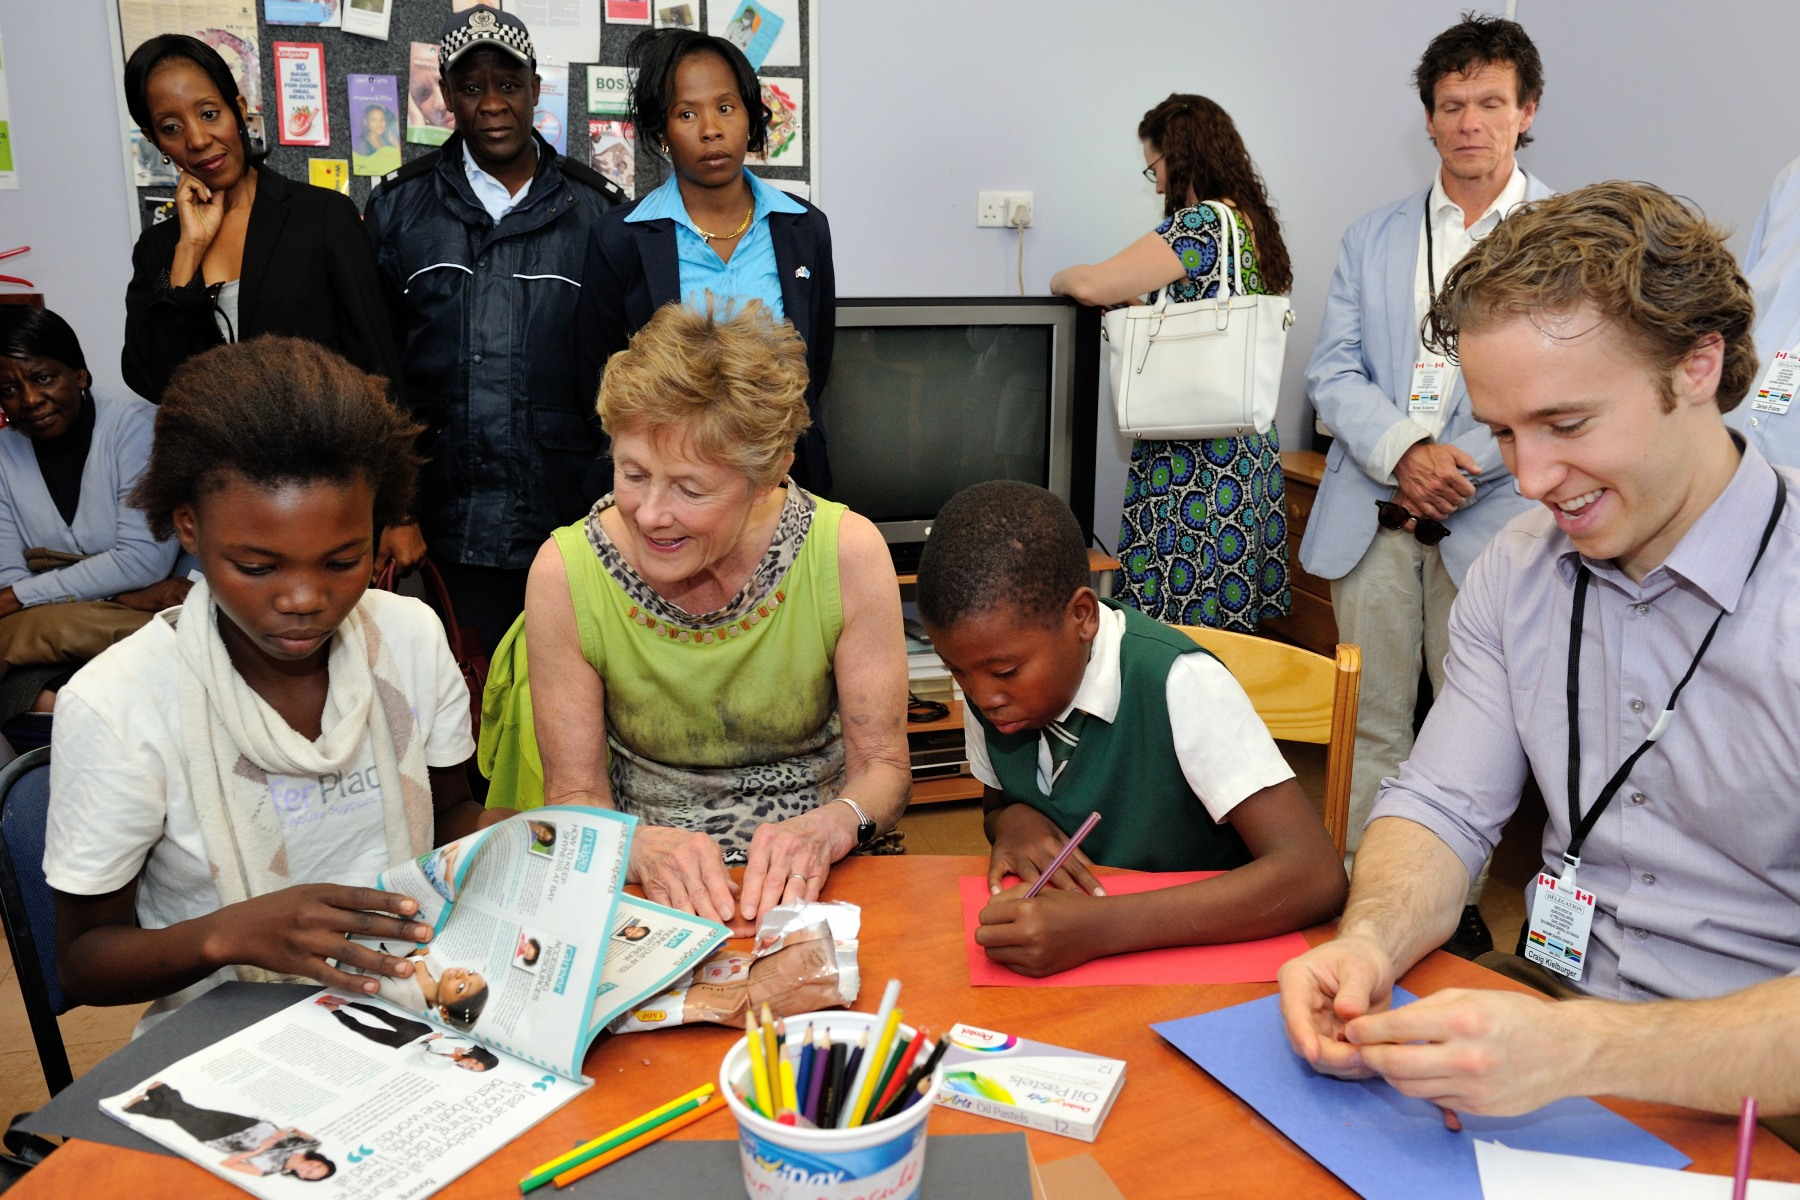 Along with Craig Kielburger, Co-Founder and Ambassador for Free the Children, Her Excellency had the opportunity to participate in after-school activities and engage with youth who benefit from the program.